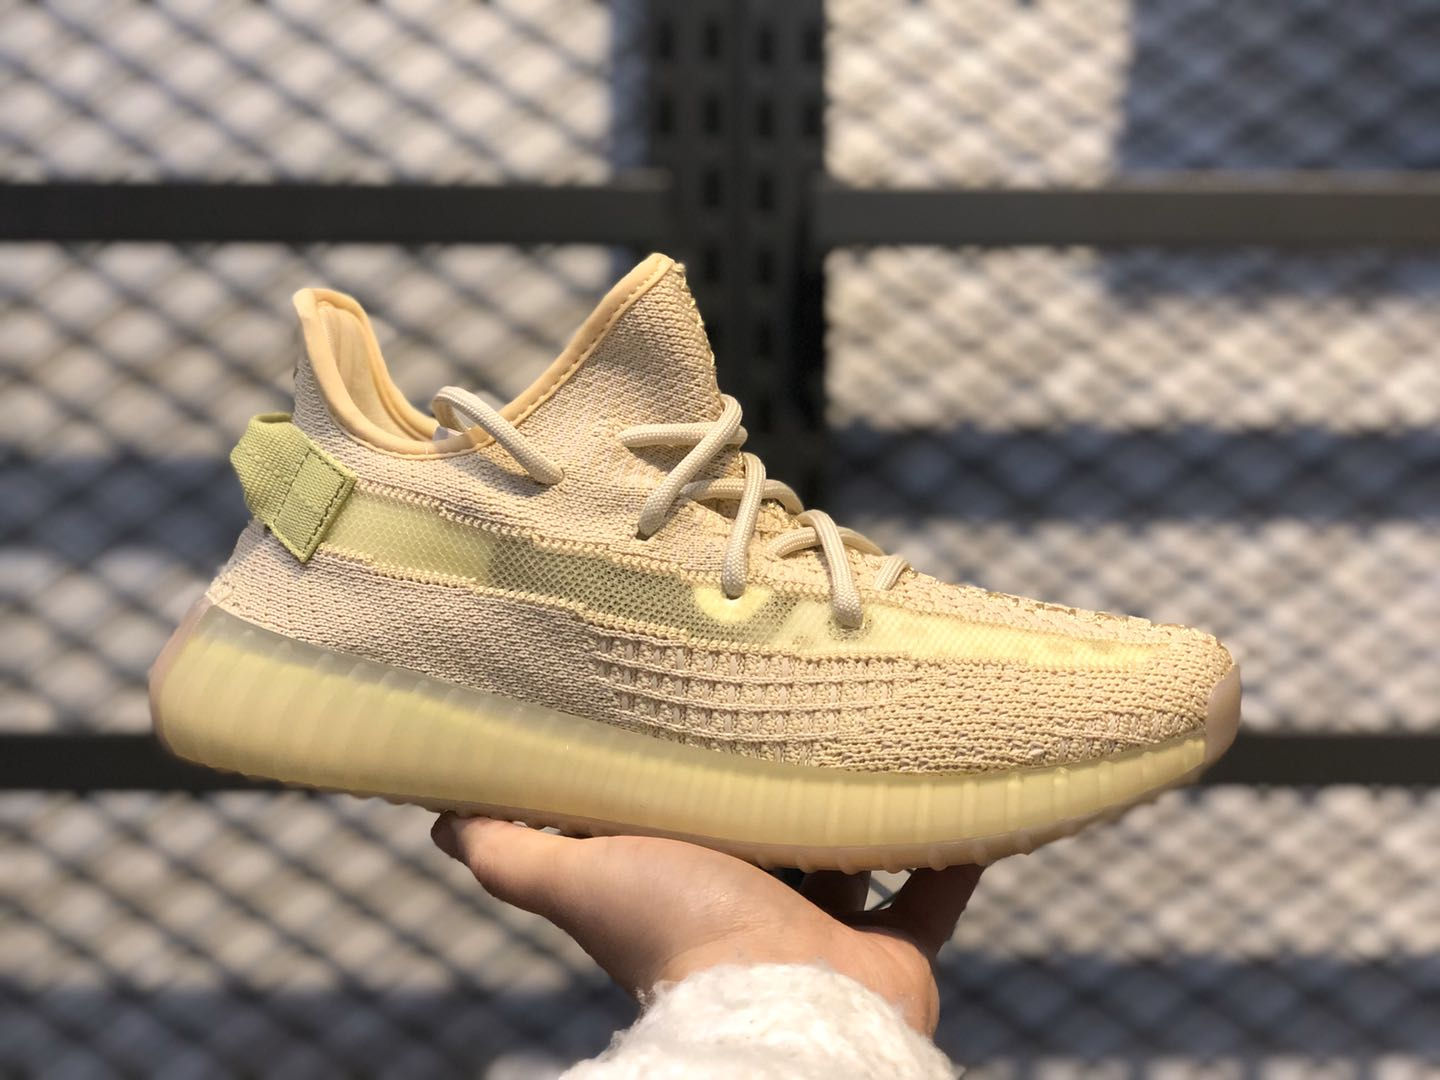 Adidas Yeezy Boost 350 v2 Asia Pacific/Africa-Middle East-India FX9028